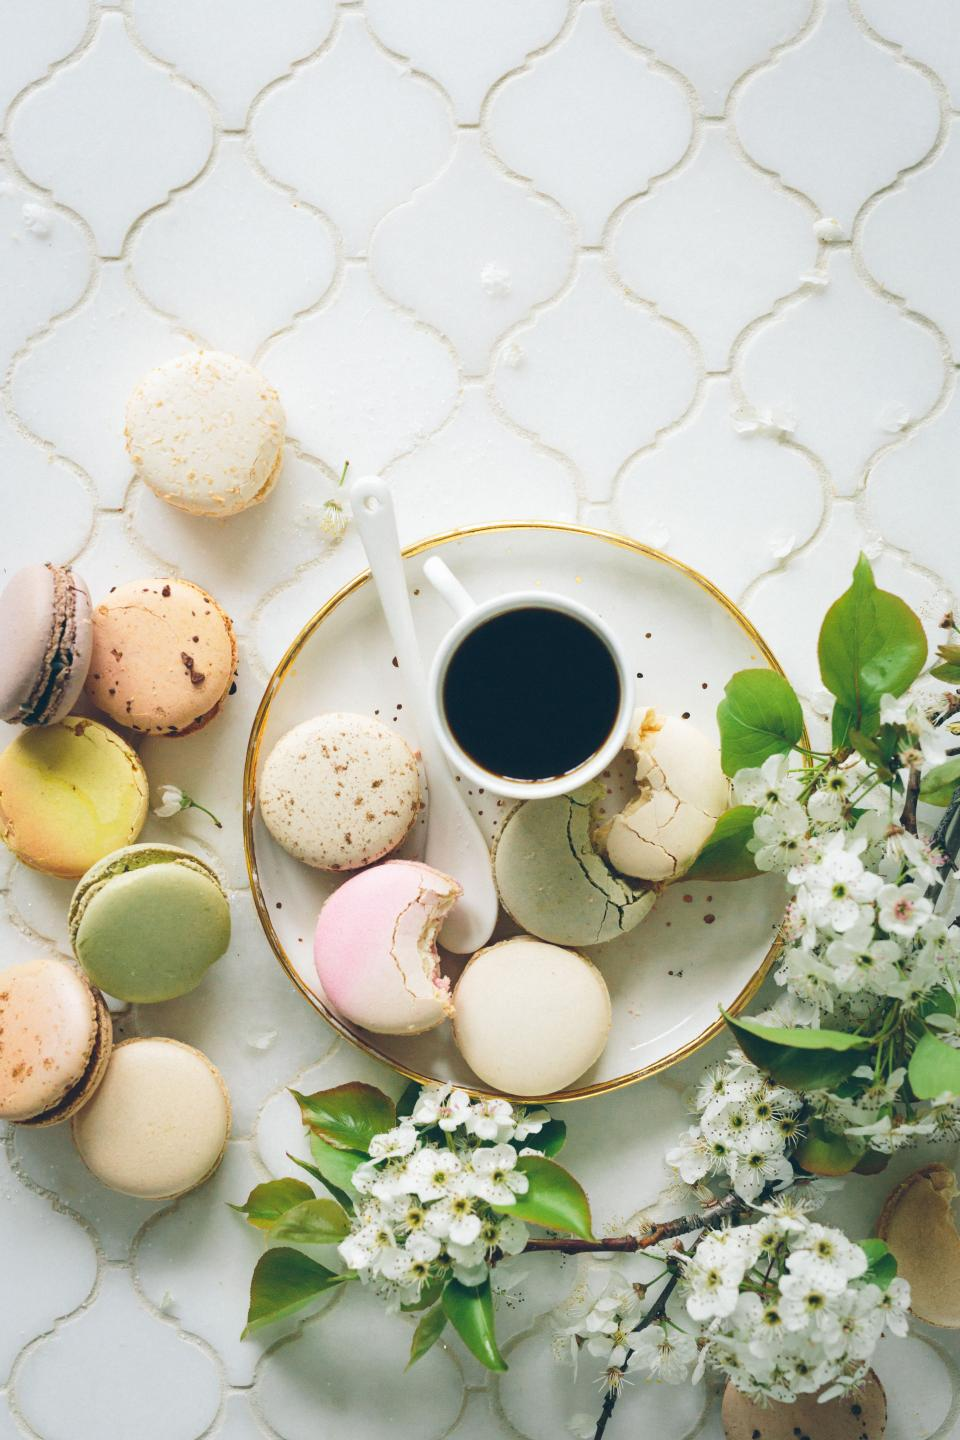 pastry colorful bake cookie table food dessert delicious flower coffee drink